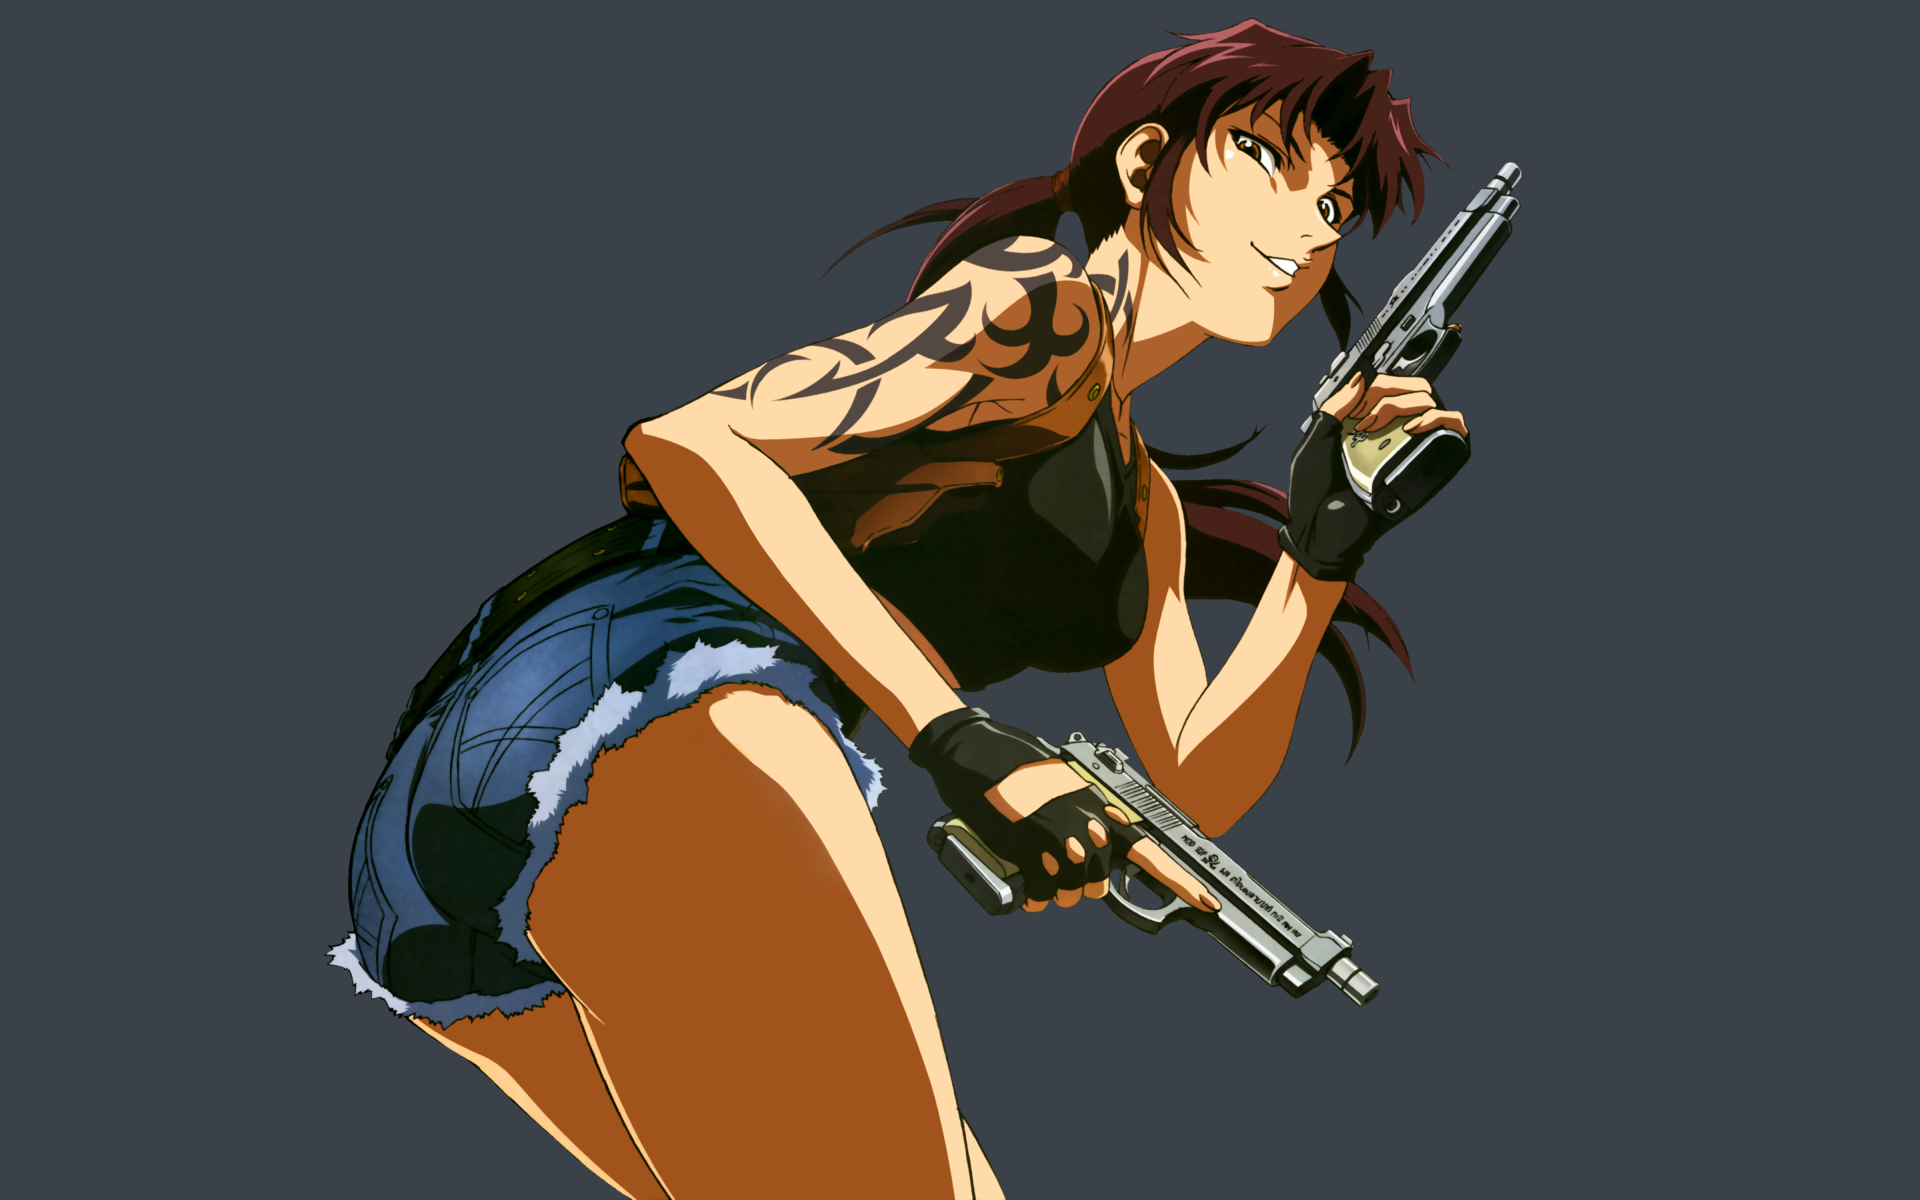 black lagoon Revy Anime HD Wallpaper